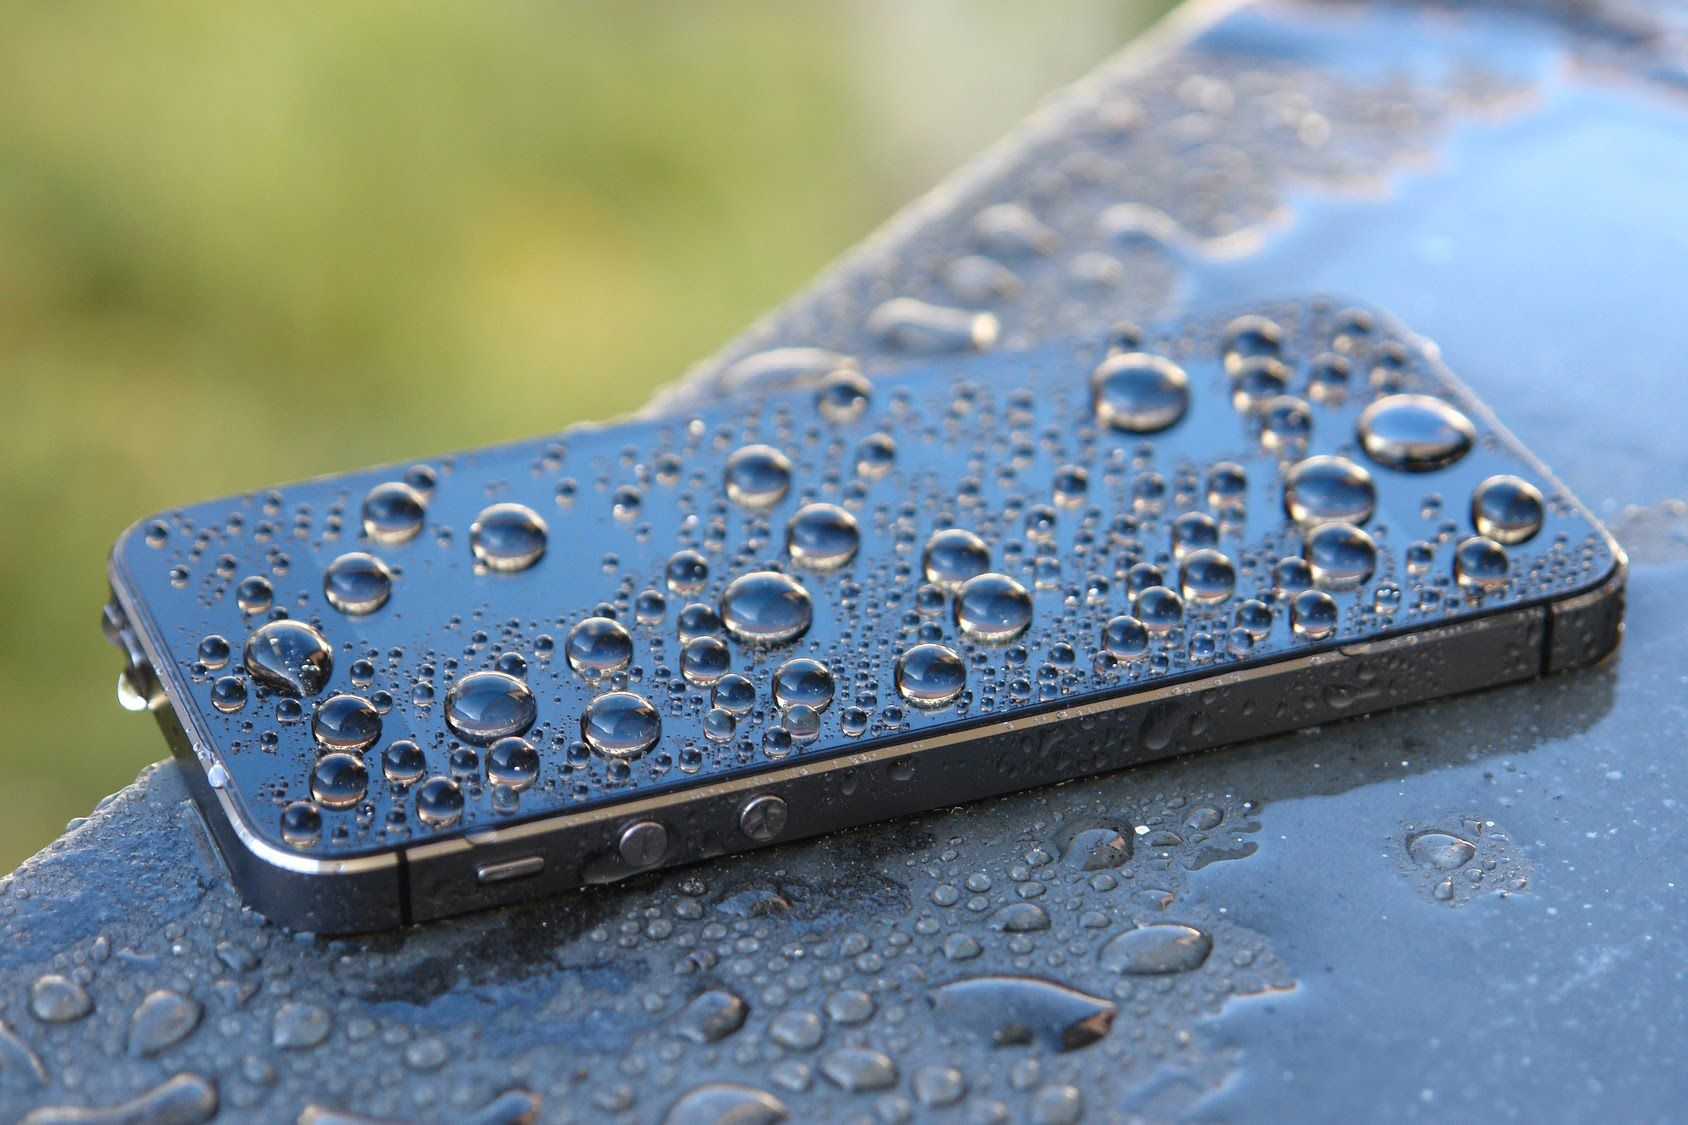 How To Fix a Water Damaged iPhone Iphone, Telefono